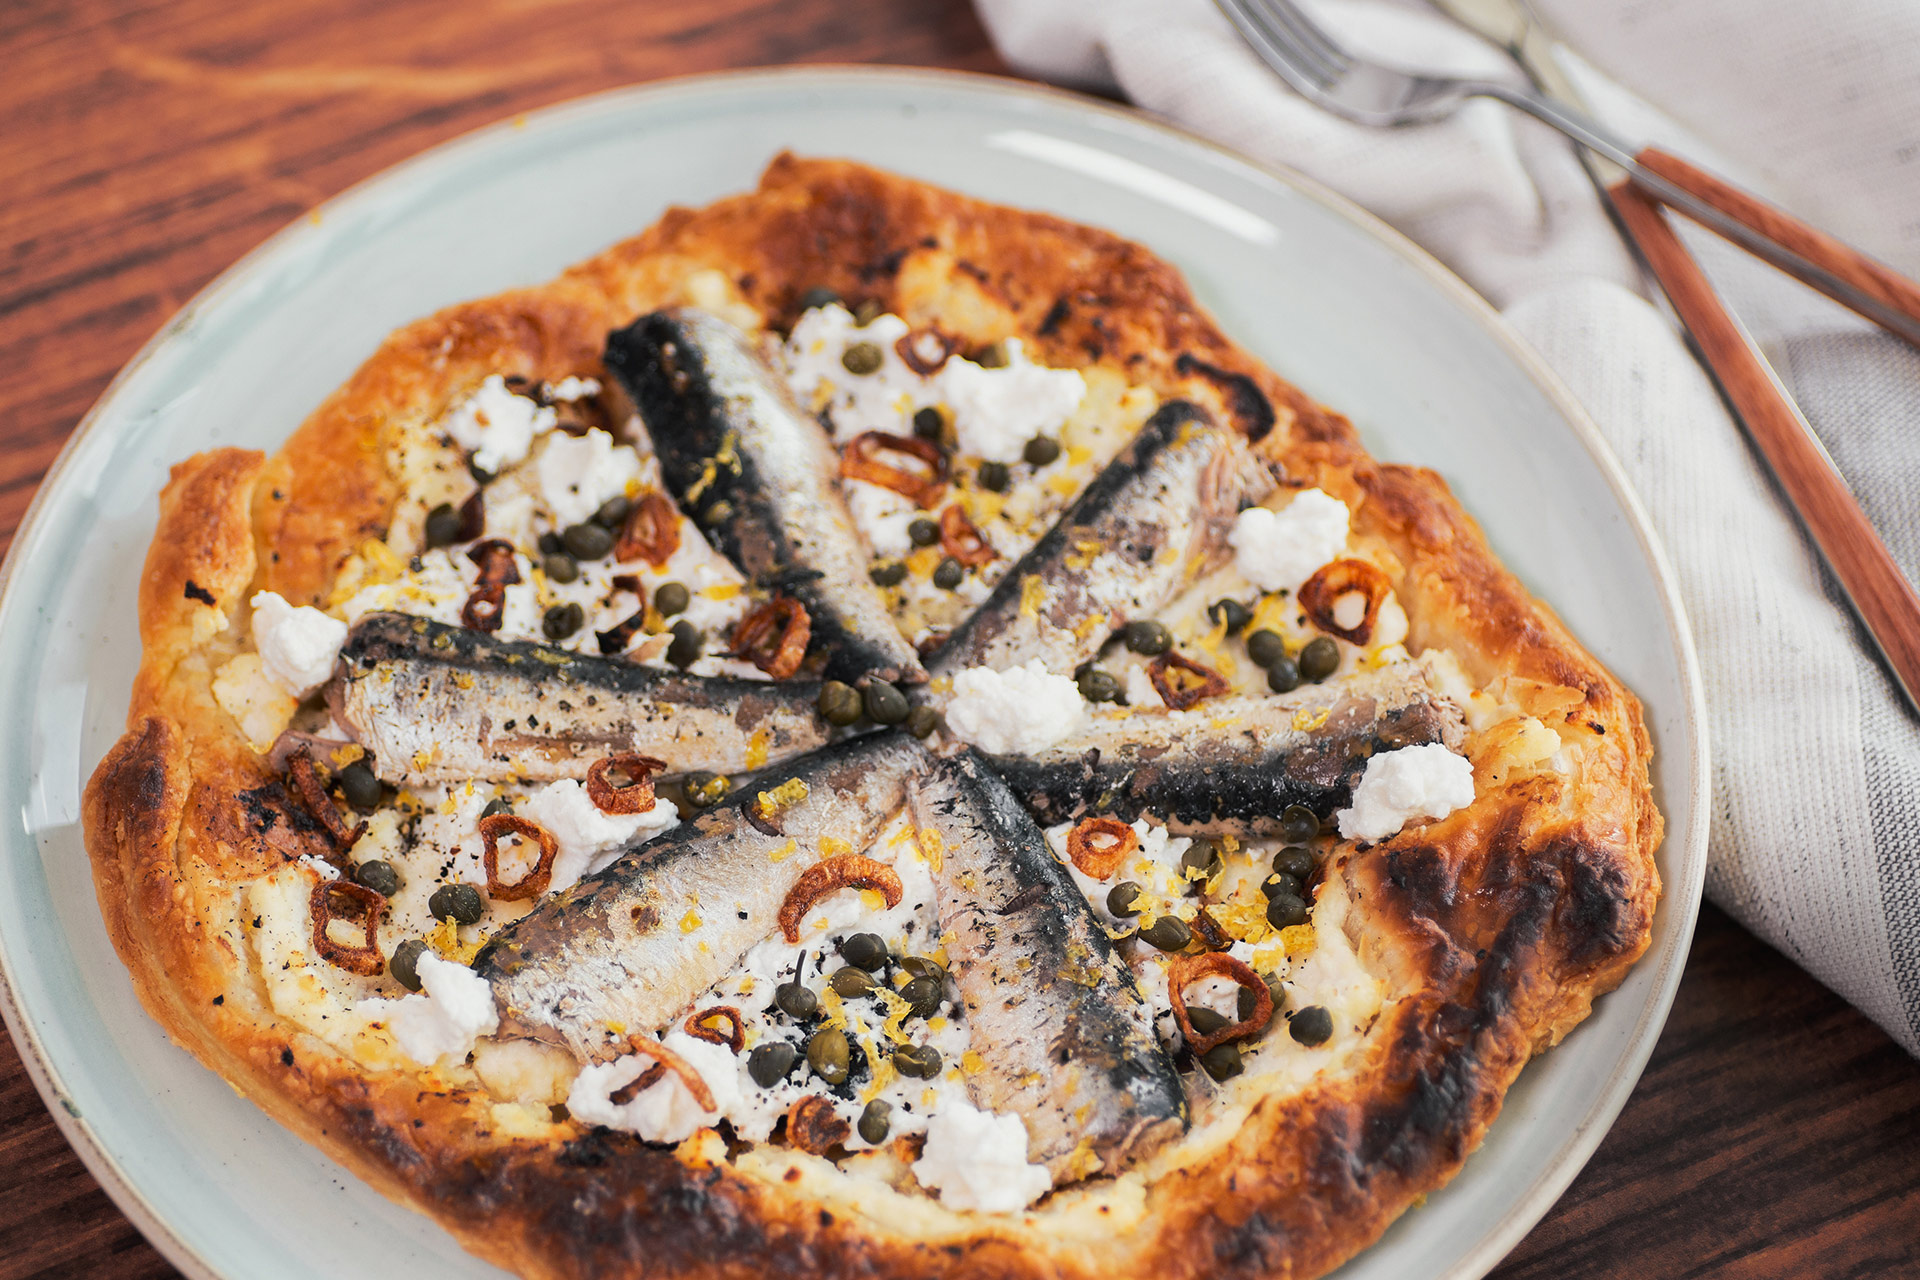 Sardine and Ricotta Tart